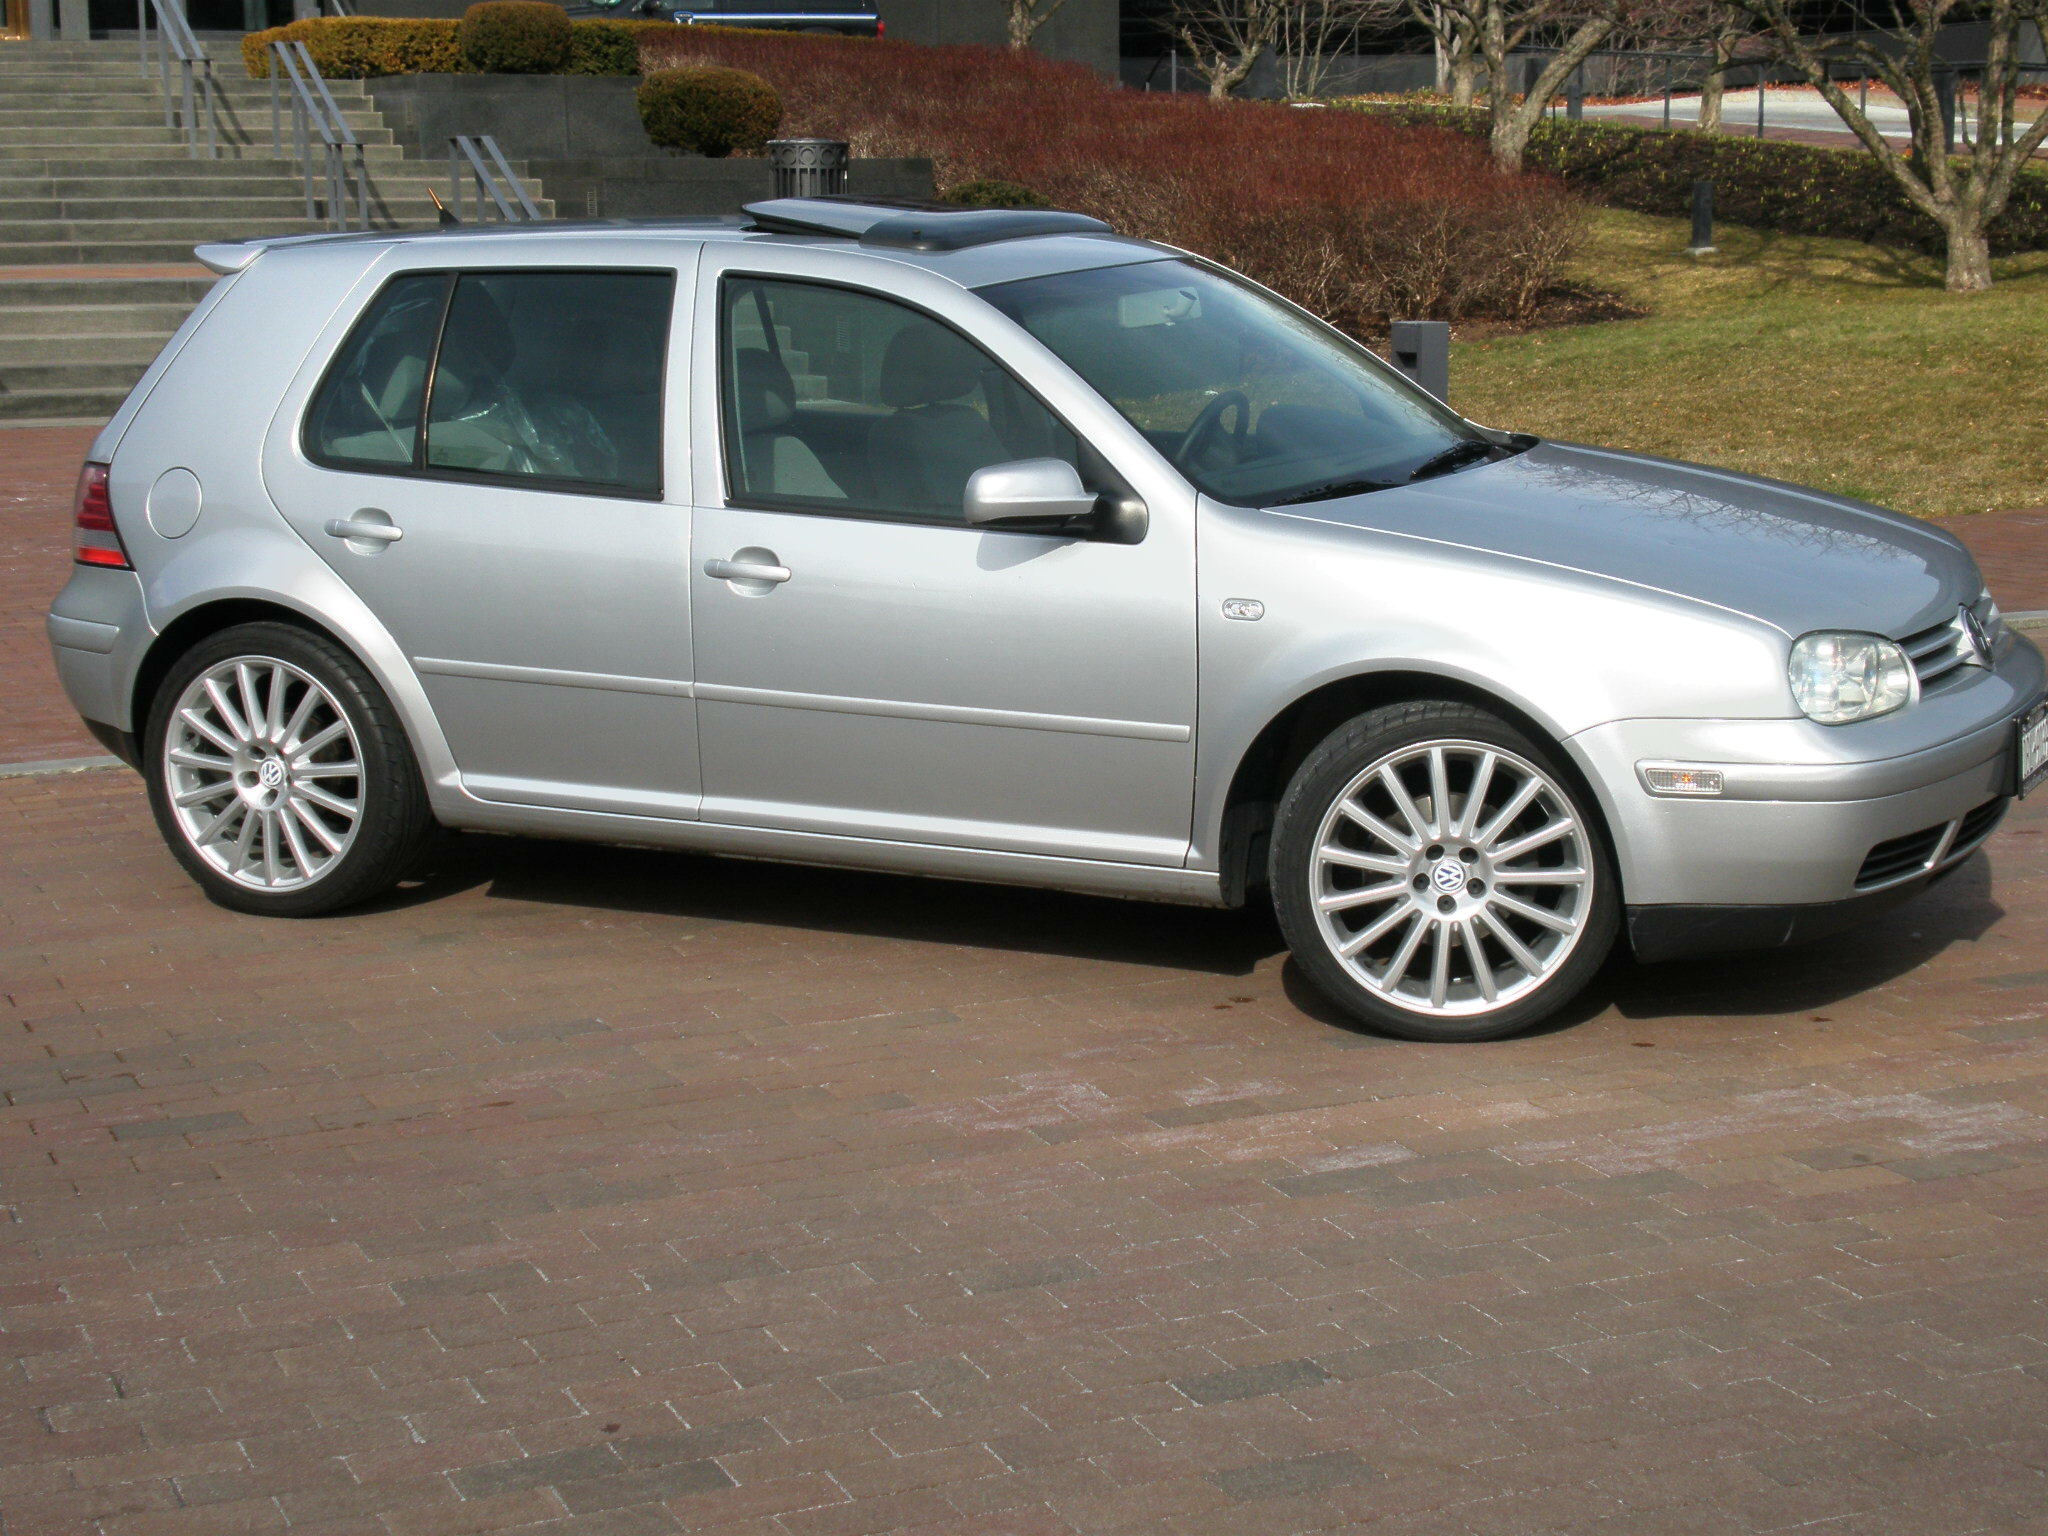 golfolns 2003 Volkswagen Golf Specs, Photos, Modification Info at CarDomain